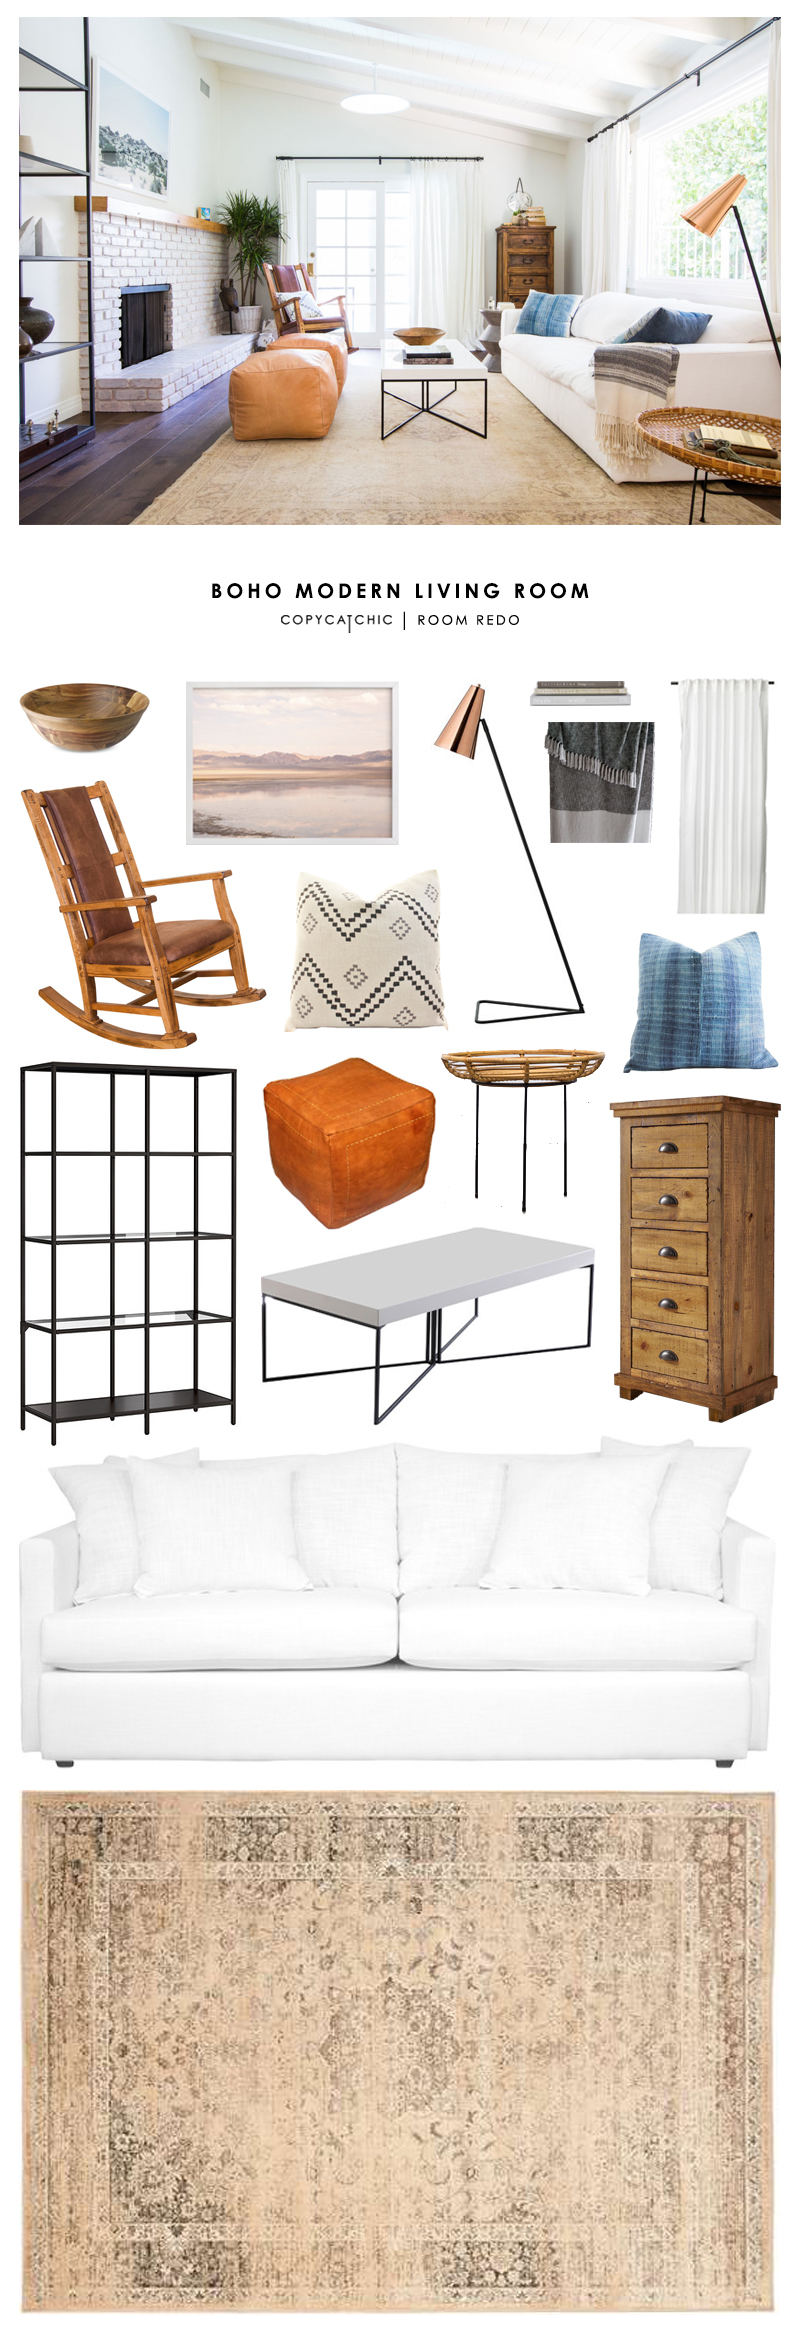 Living rooms archives page 13 of 56 copycatchic for Modern home decor for less